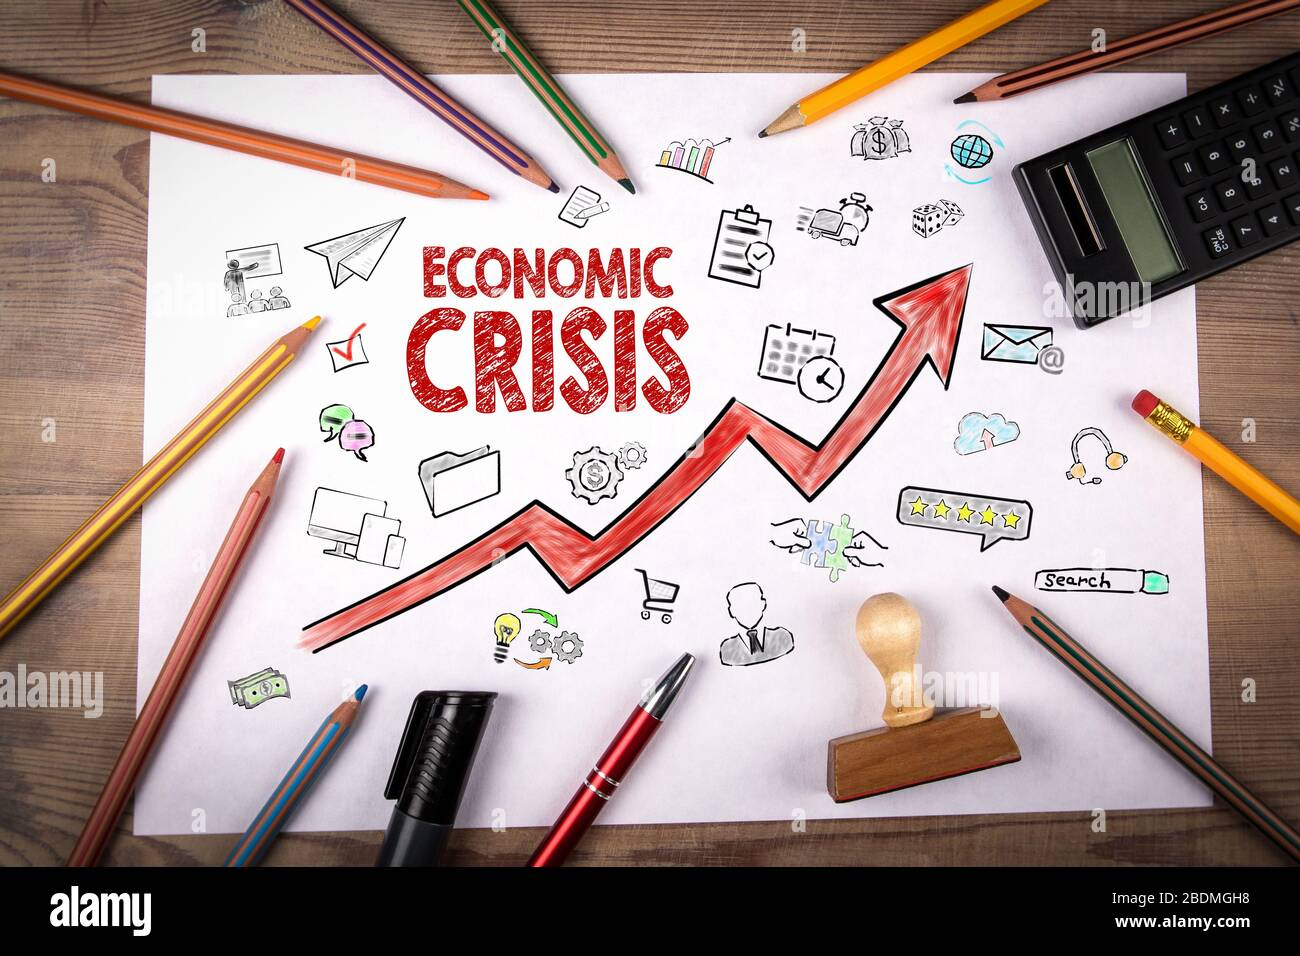 Economic Crisis. Arrow with icons. Stamp and pencil, calculator on white piece of paper Stock Photo